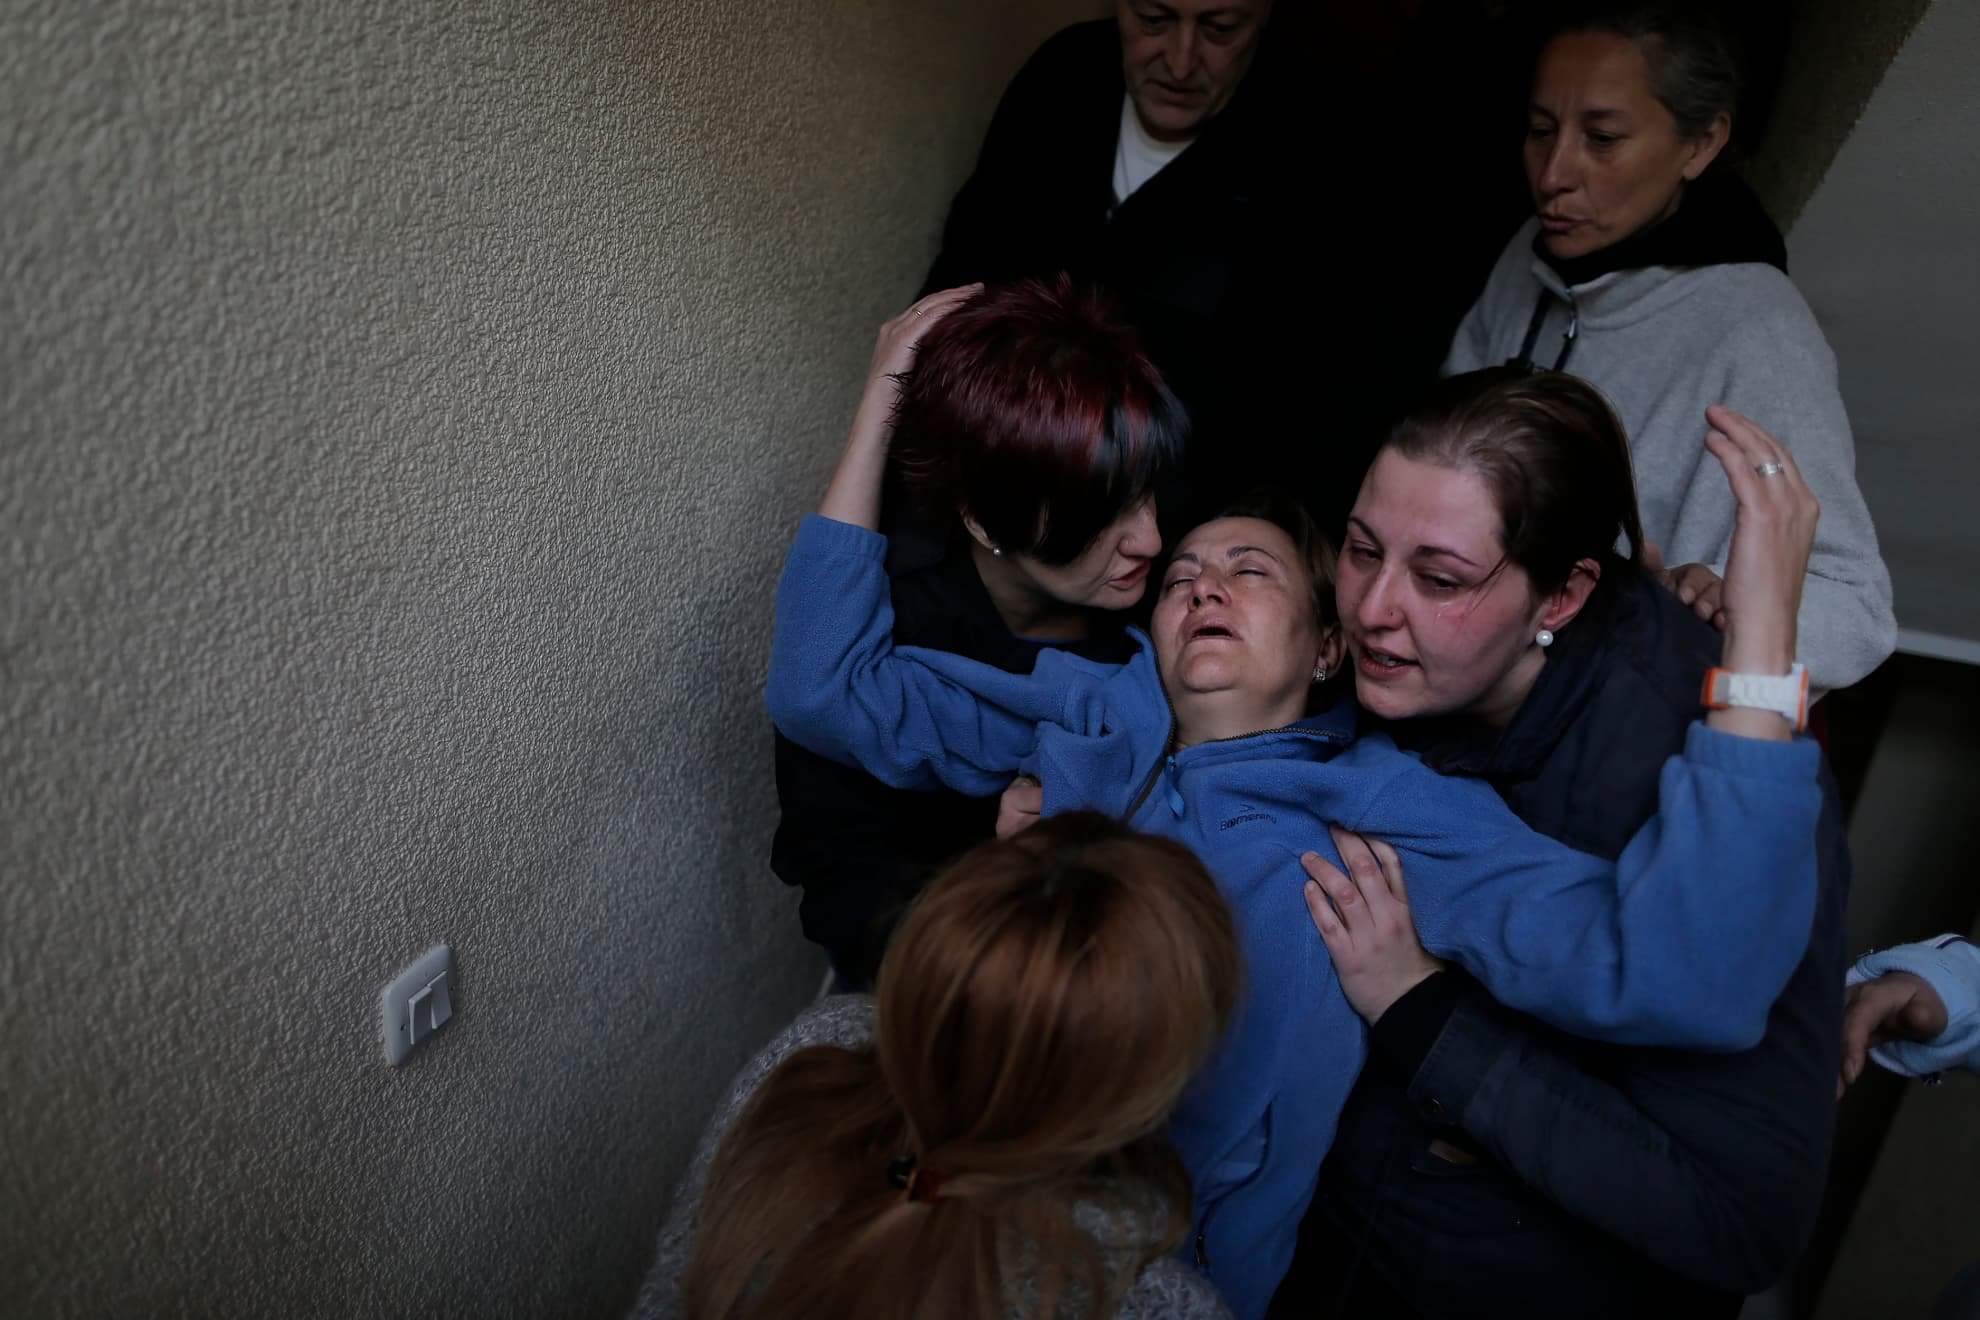 Soledad Carrasquilla Delgado, 53 years old, centre, unemployed, gets help from her daughter, centre right, her sister, centre left, her husband, top left, and two members of the Victims' Mortgage Platform (PAH), top right, and bottom, as she faints during a panic attack following the postponement of her and her family's eviction in Madrid, Wednesday, Oct. 30, 2013.